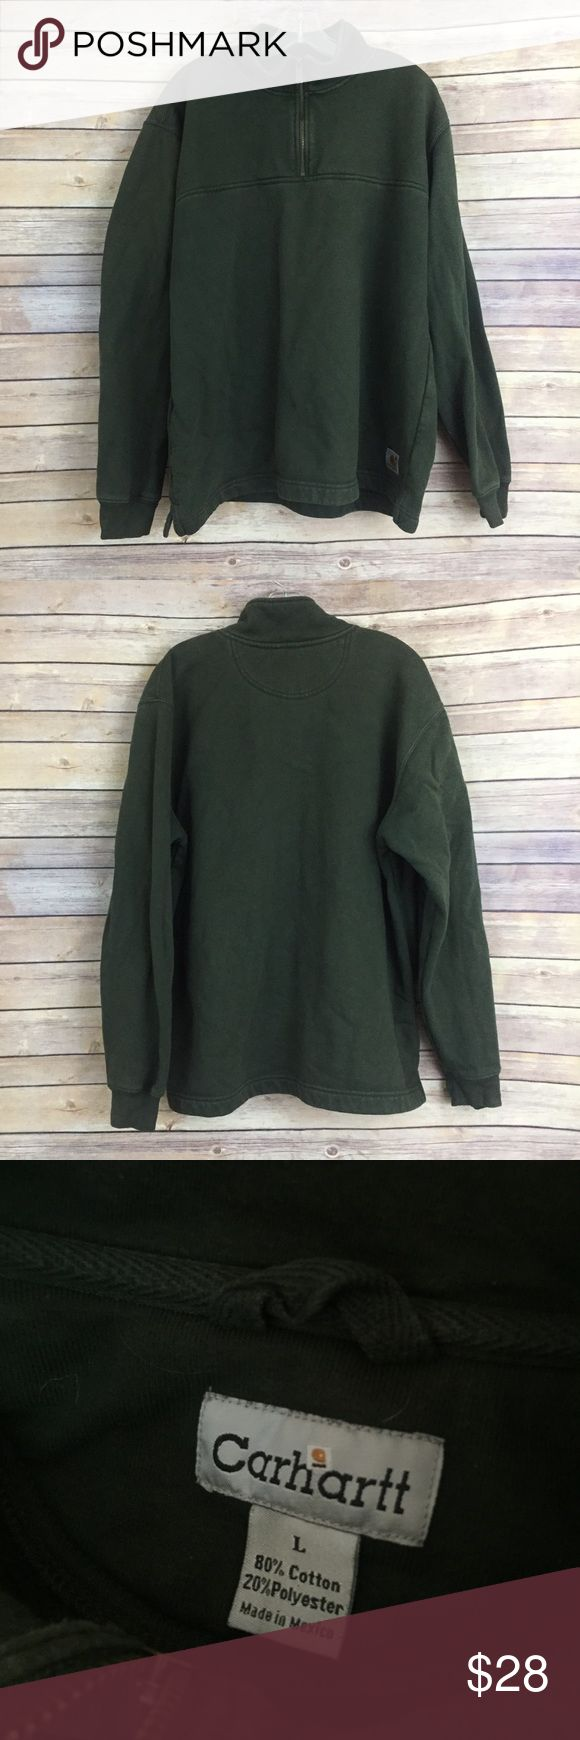 Men's Carhartt hunter grn pullover size L This men's Carhartt pullover sweatshirt is a size Large and is a nice hunter green color m.  There is very slight overall wear and fade but no damage. Carhartt Shirts Sweatshirts & Hoodies